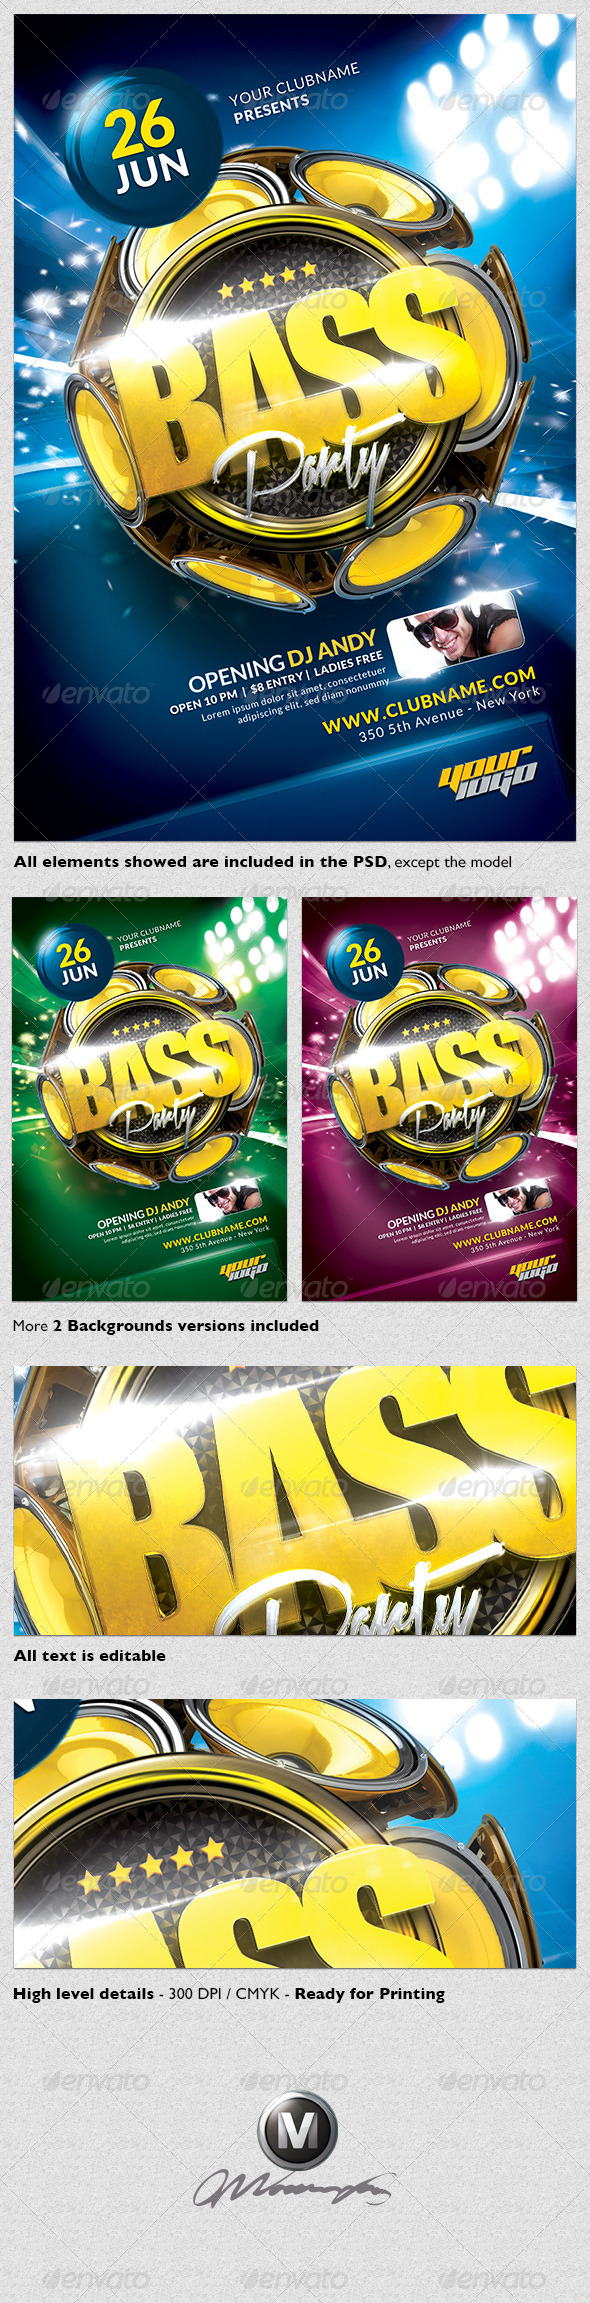 GraphicRiver Bass Party Flyer Template 4681563